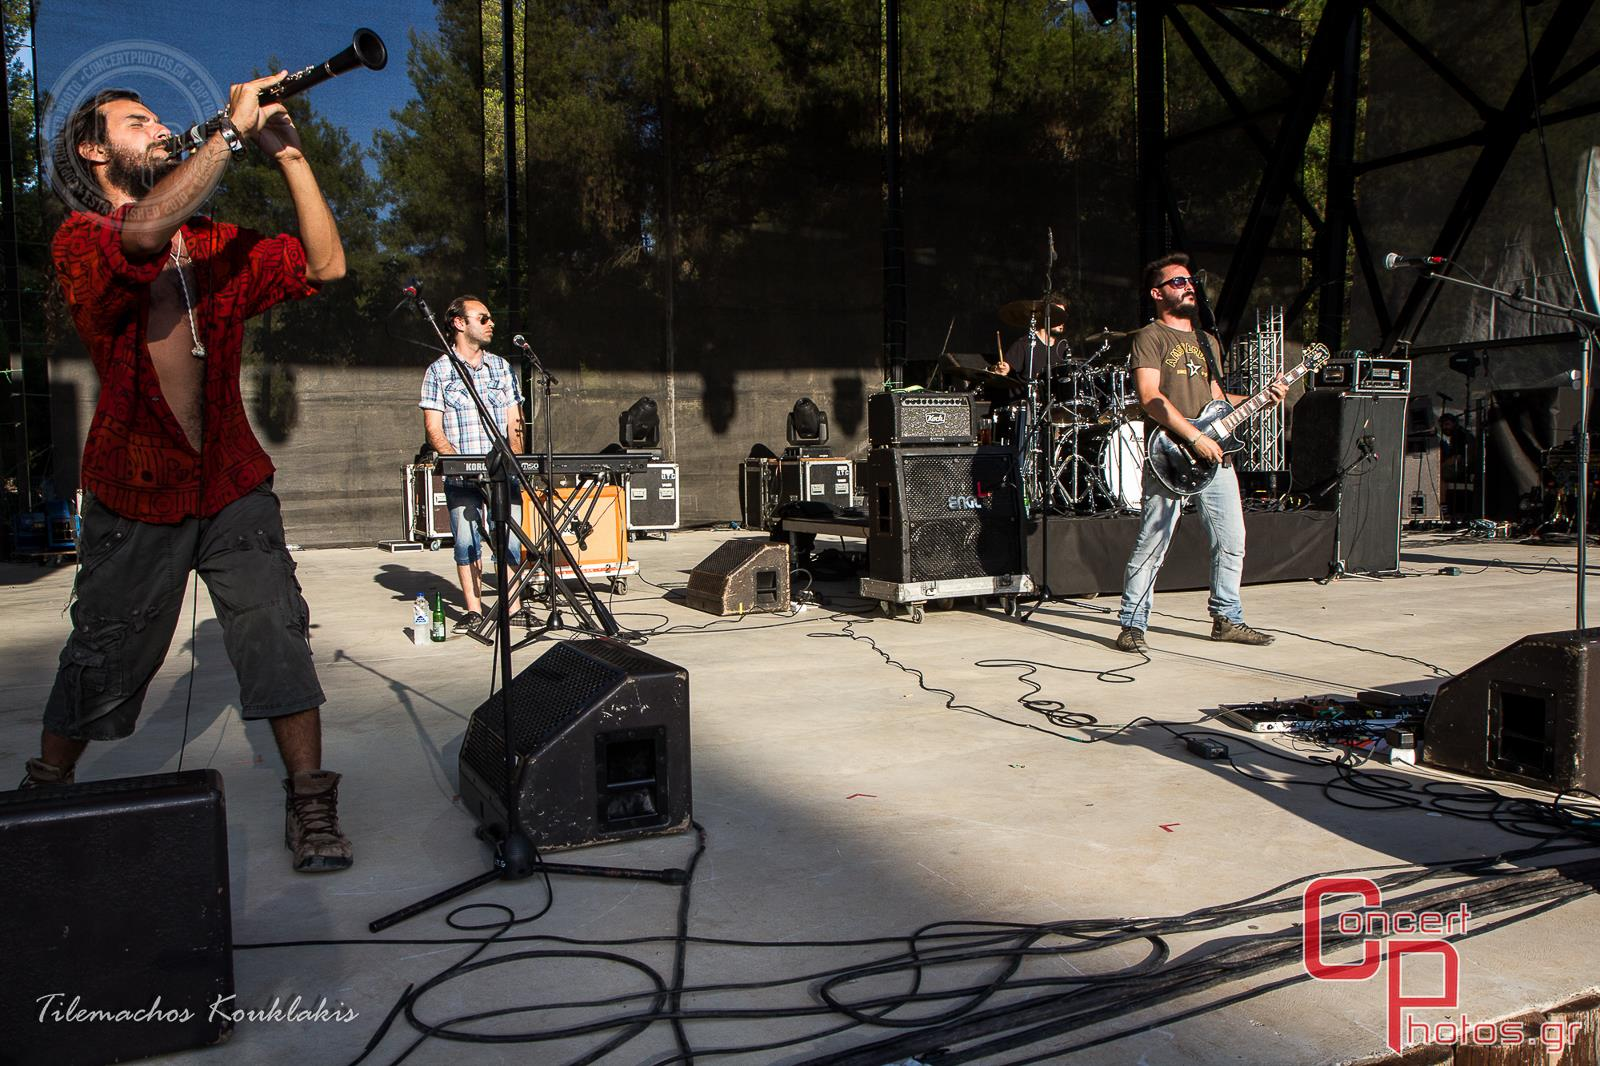 Rockwave 2014-Rockwave 2014 - Day 1 photographer:  - Rockwave-2014-40